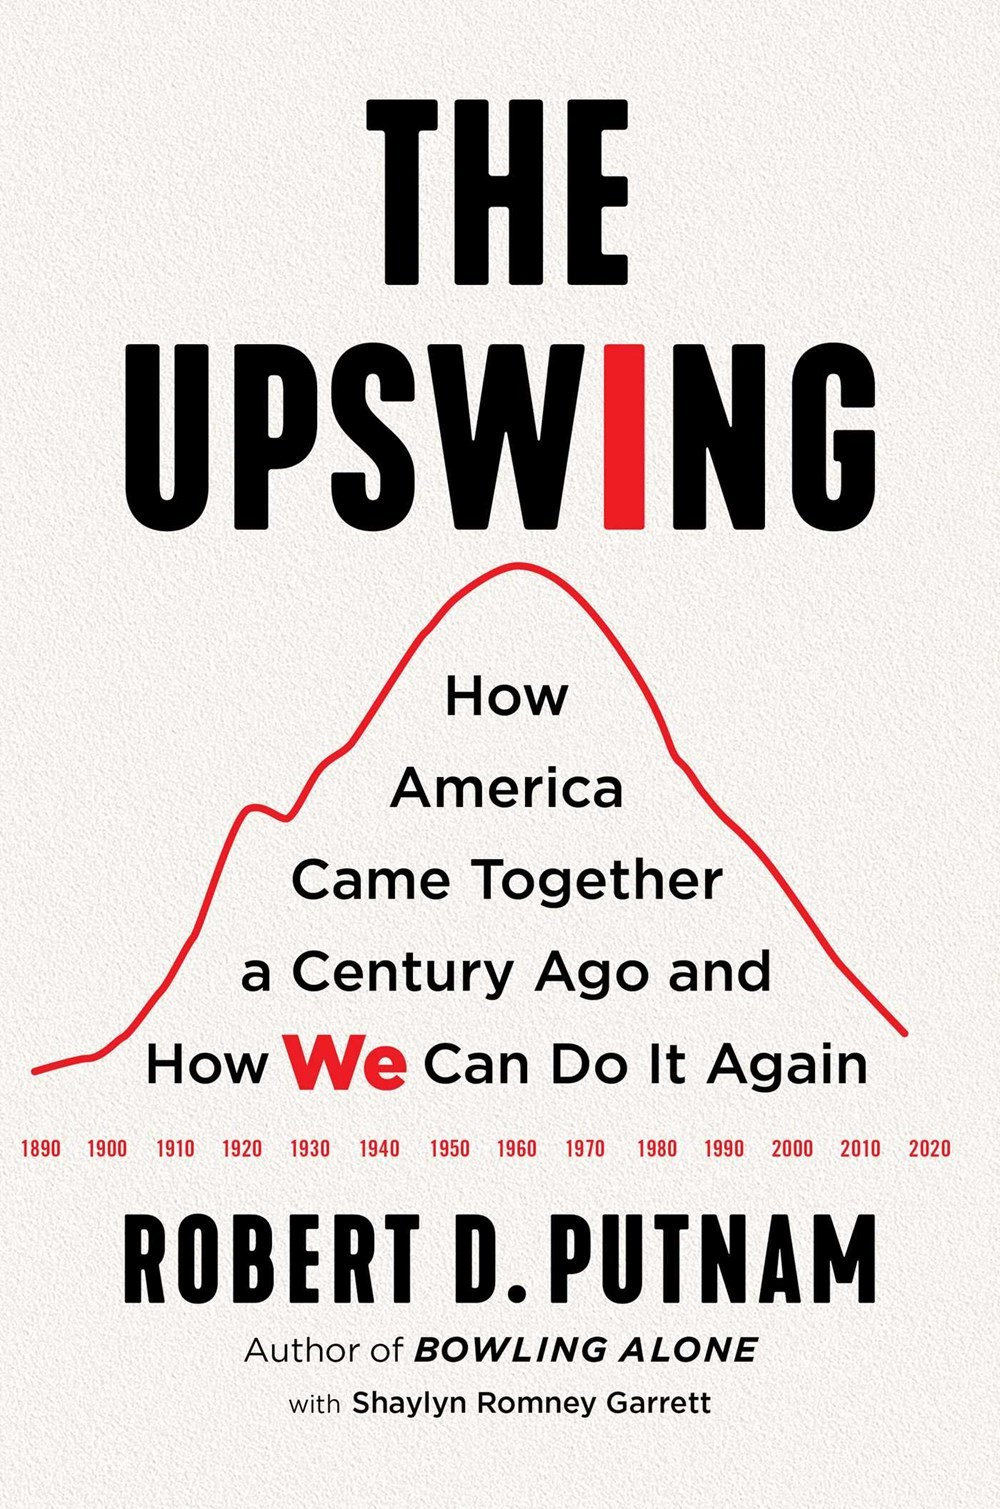 Upswing How America Came Together a Century Ago and How We Can Do It Again